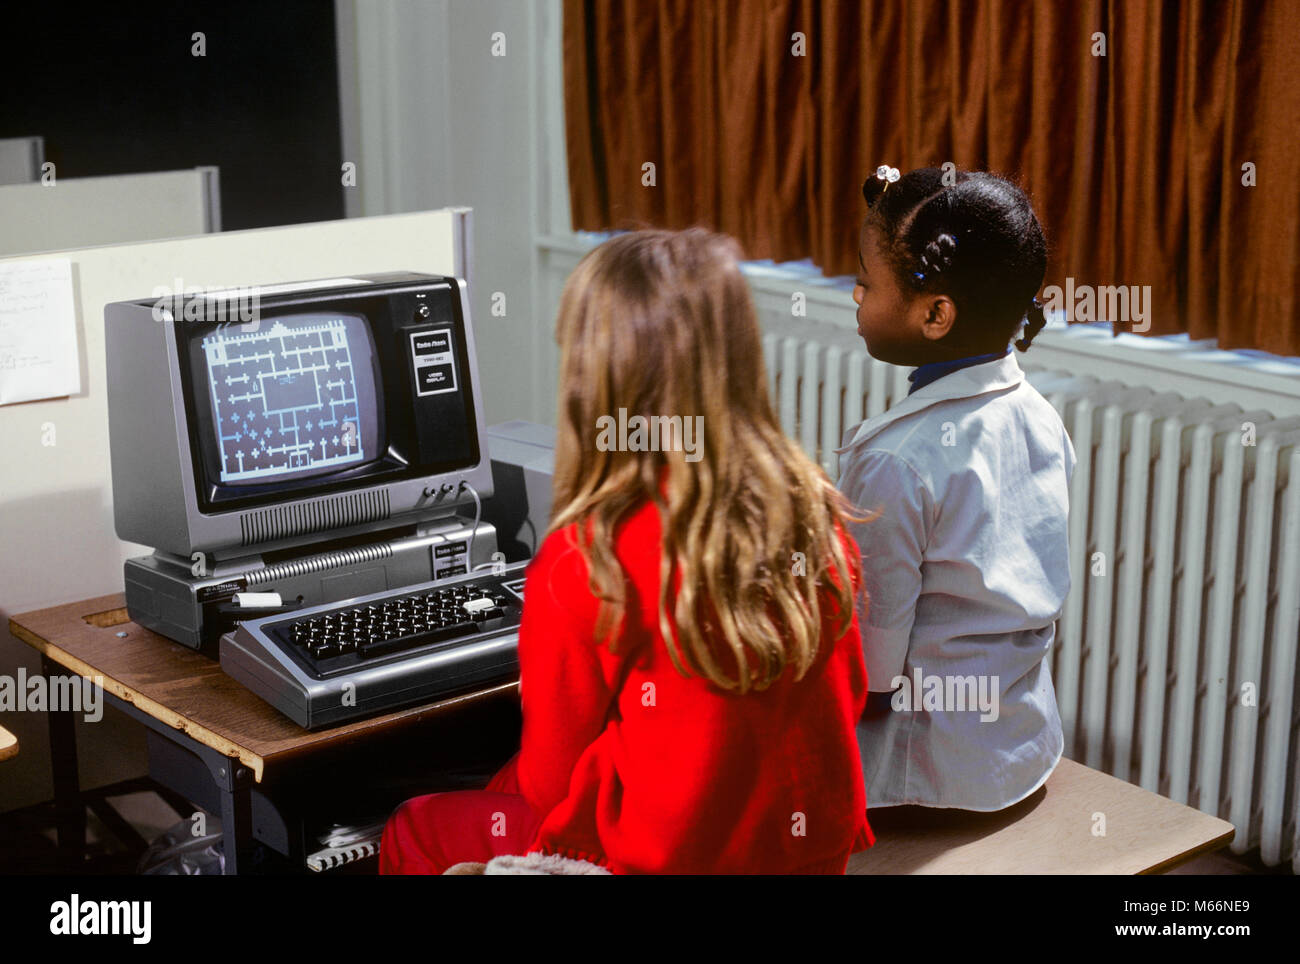 1980s TWO GIRLS LEARNING ABOUT COMPUTERS BY PLAYING ON SCREEN GAME - ks22165 VAL001 HARS CONFIDENCE NOSTALGIA TOGETHERNESS - Stock Image